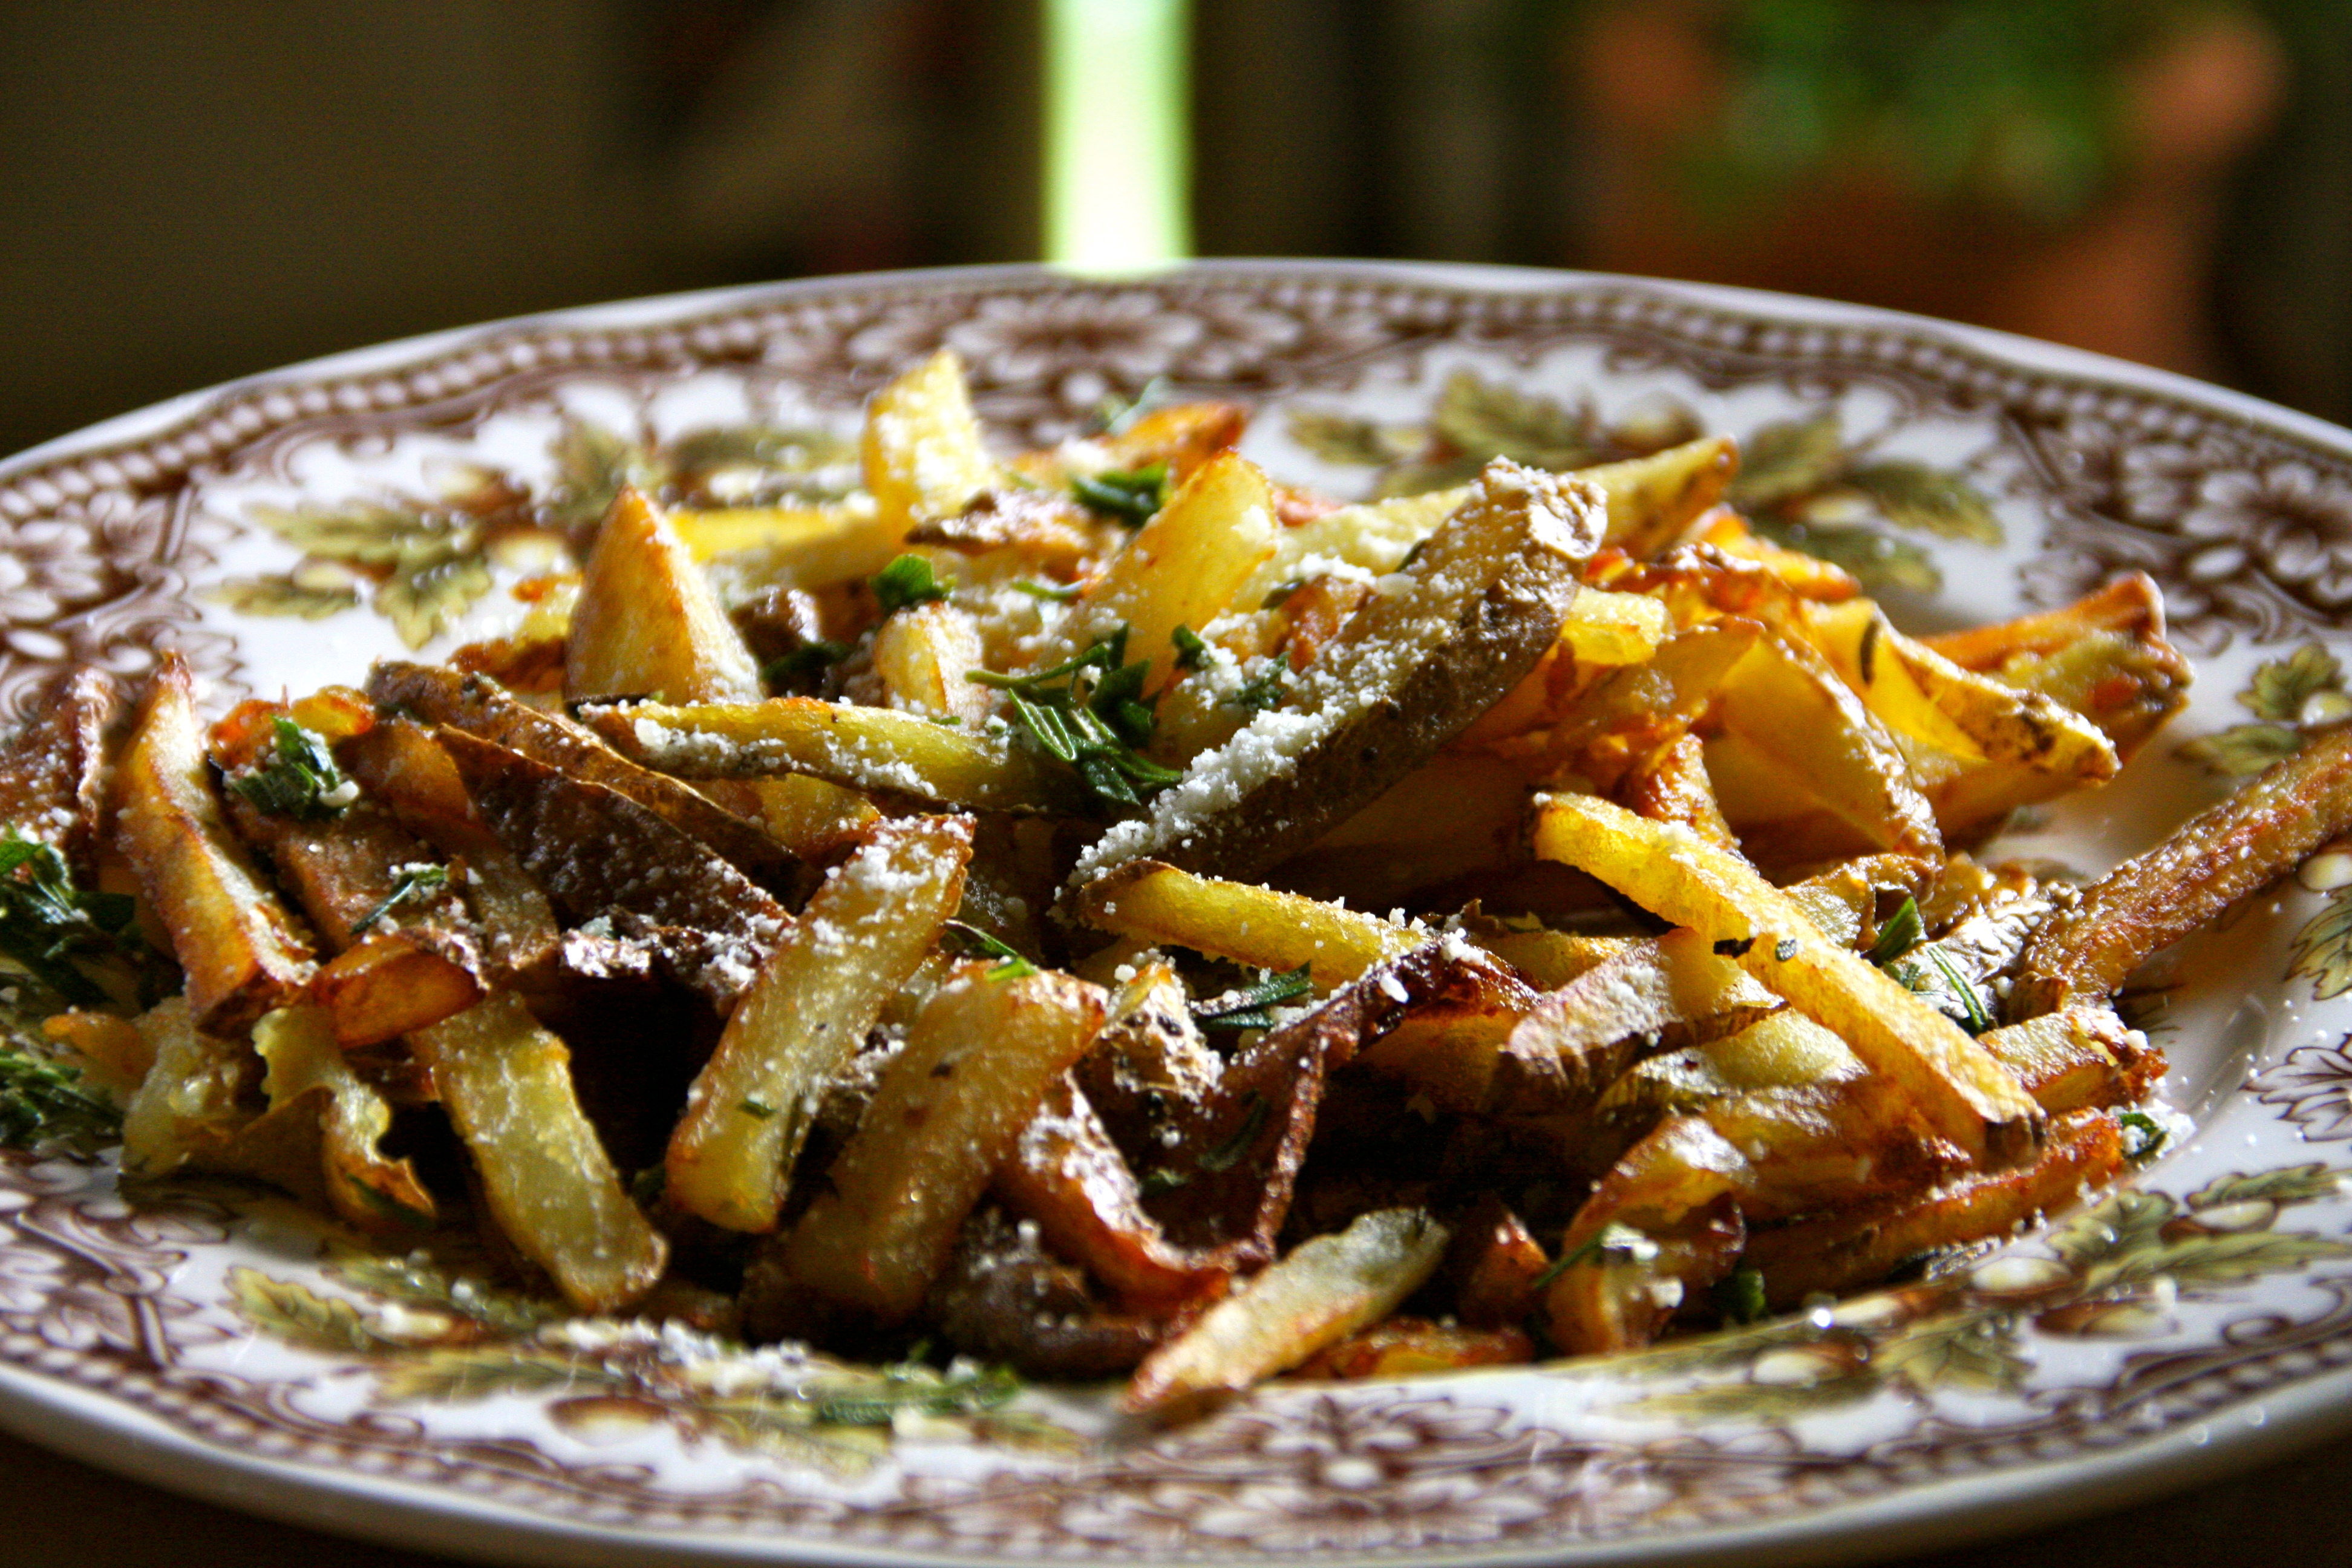 Rosemary Parmesan French Fries